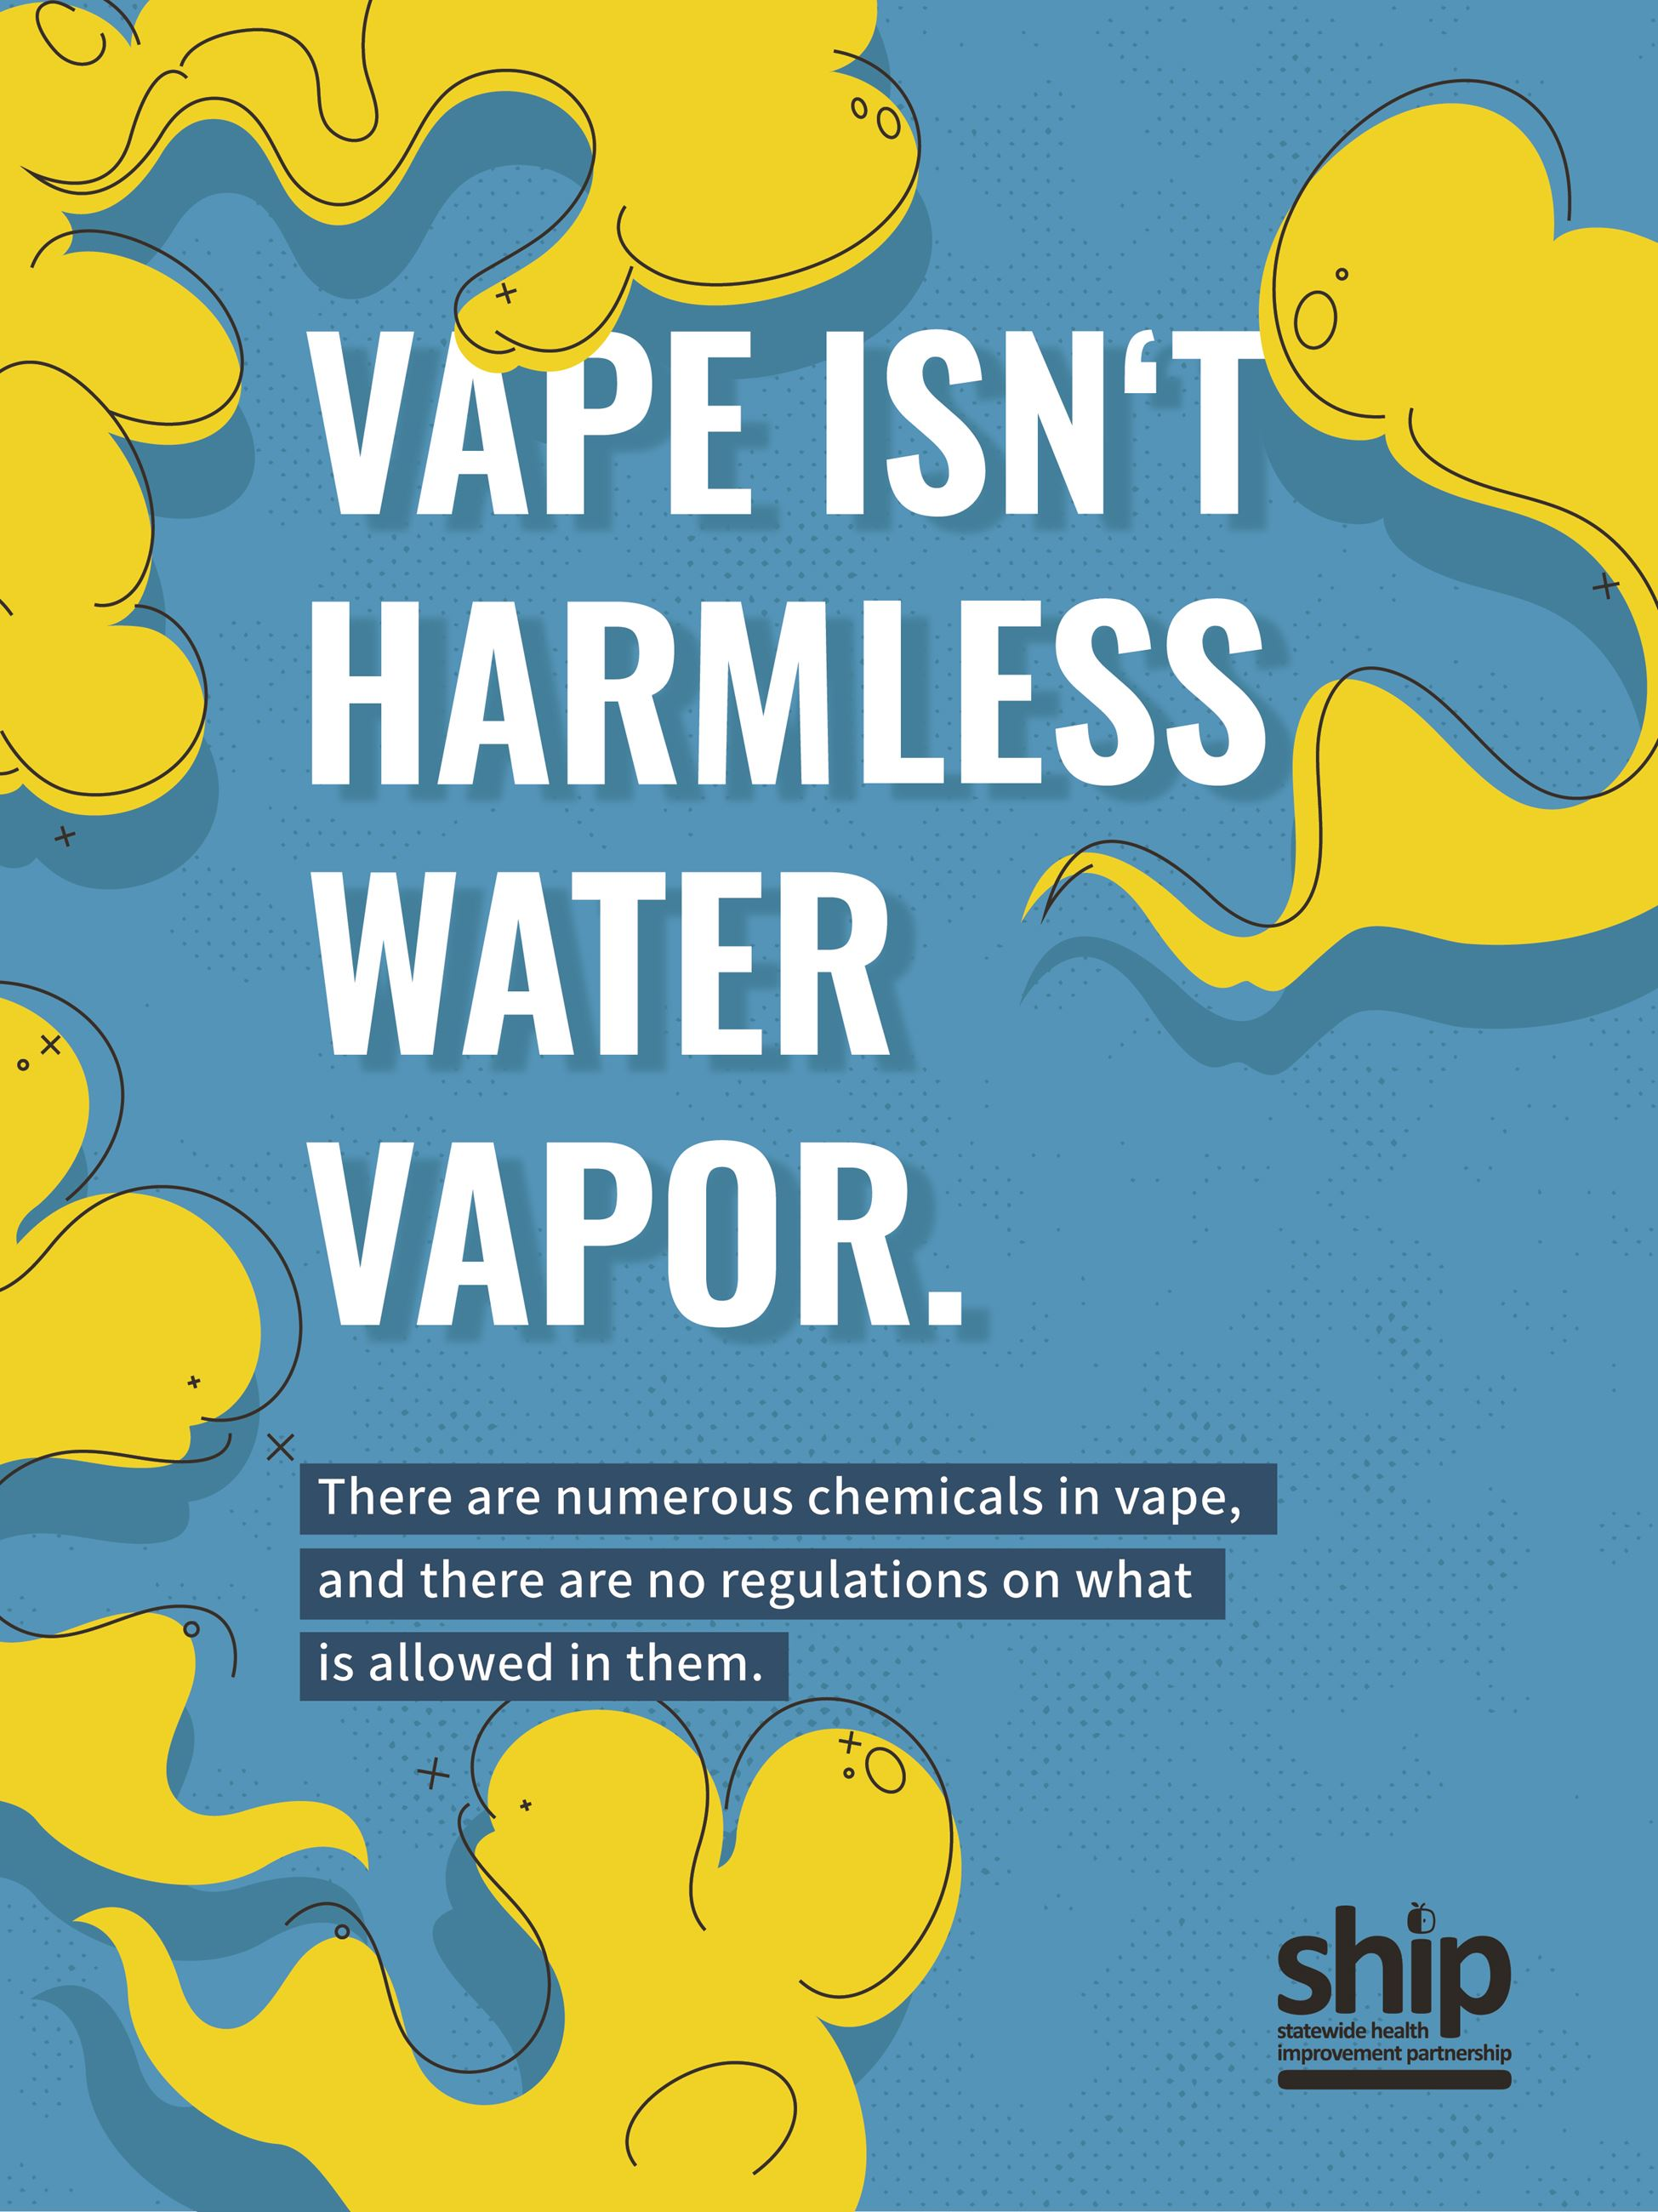 Vape isn't harmless water vapor. There are numerous chemicals in vape, and there are no regulatio